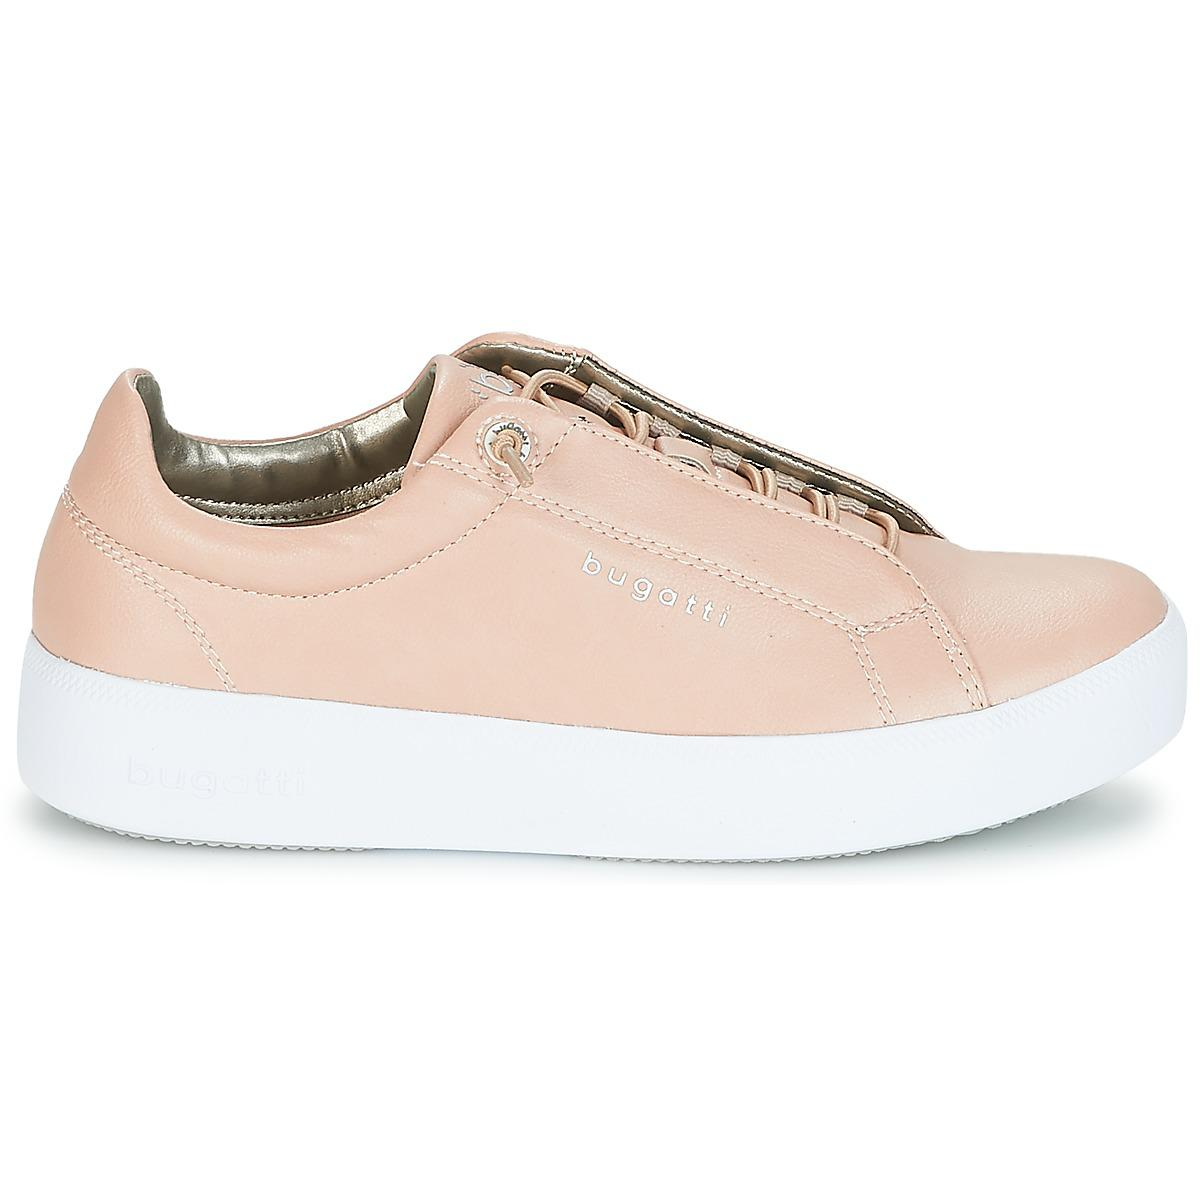 Bugatti - Women s Shoes (trainers) In Pink in Pink - Lyst 44fa7d7a56